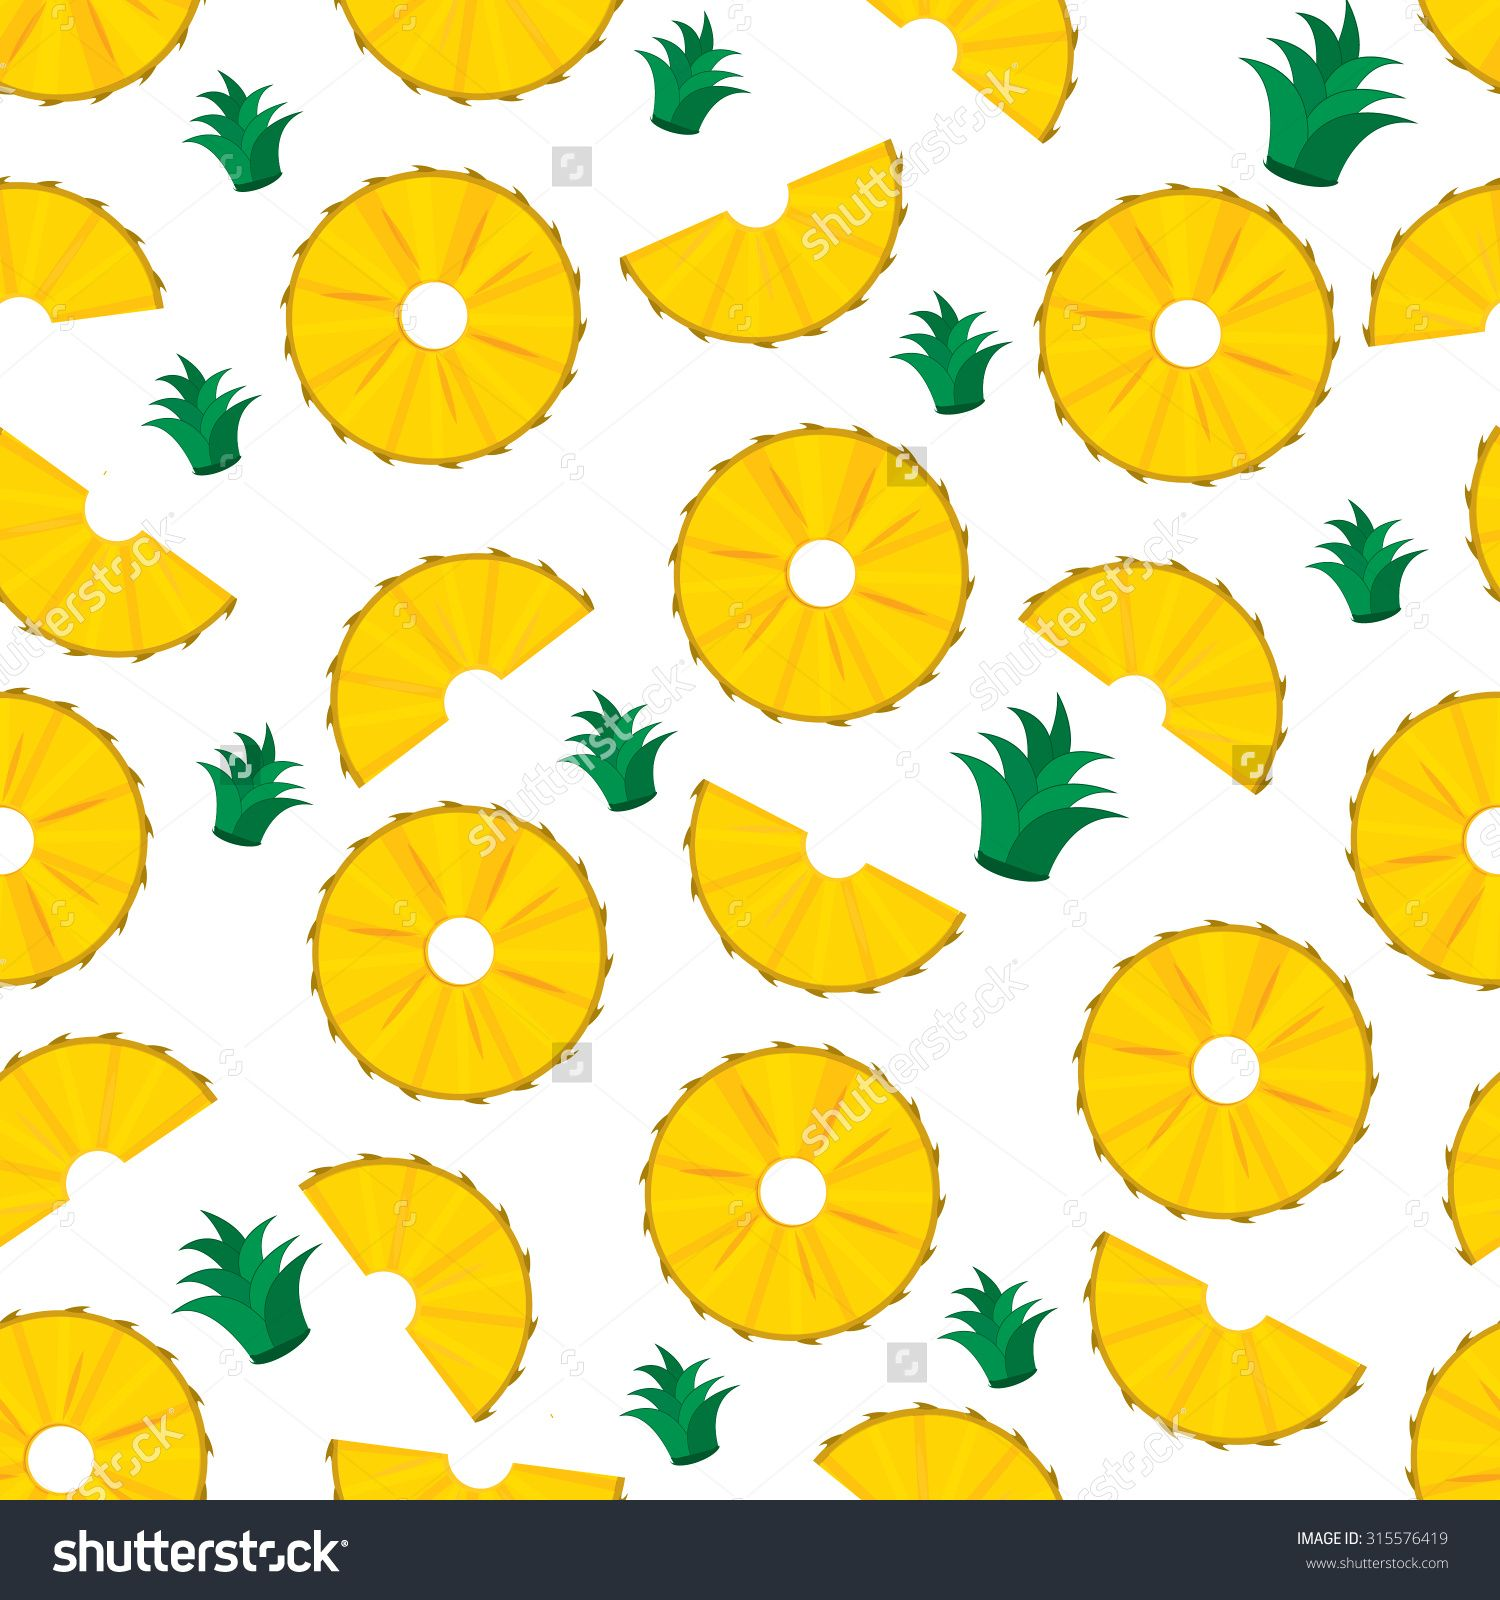 pineapple slices. summer pineapple fruit illustration.